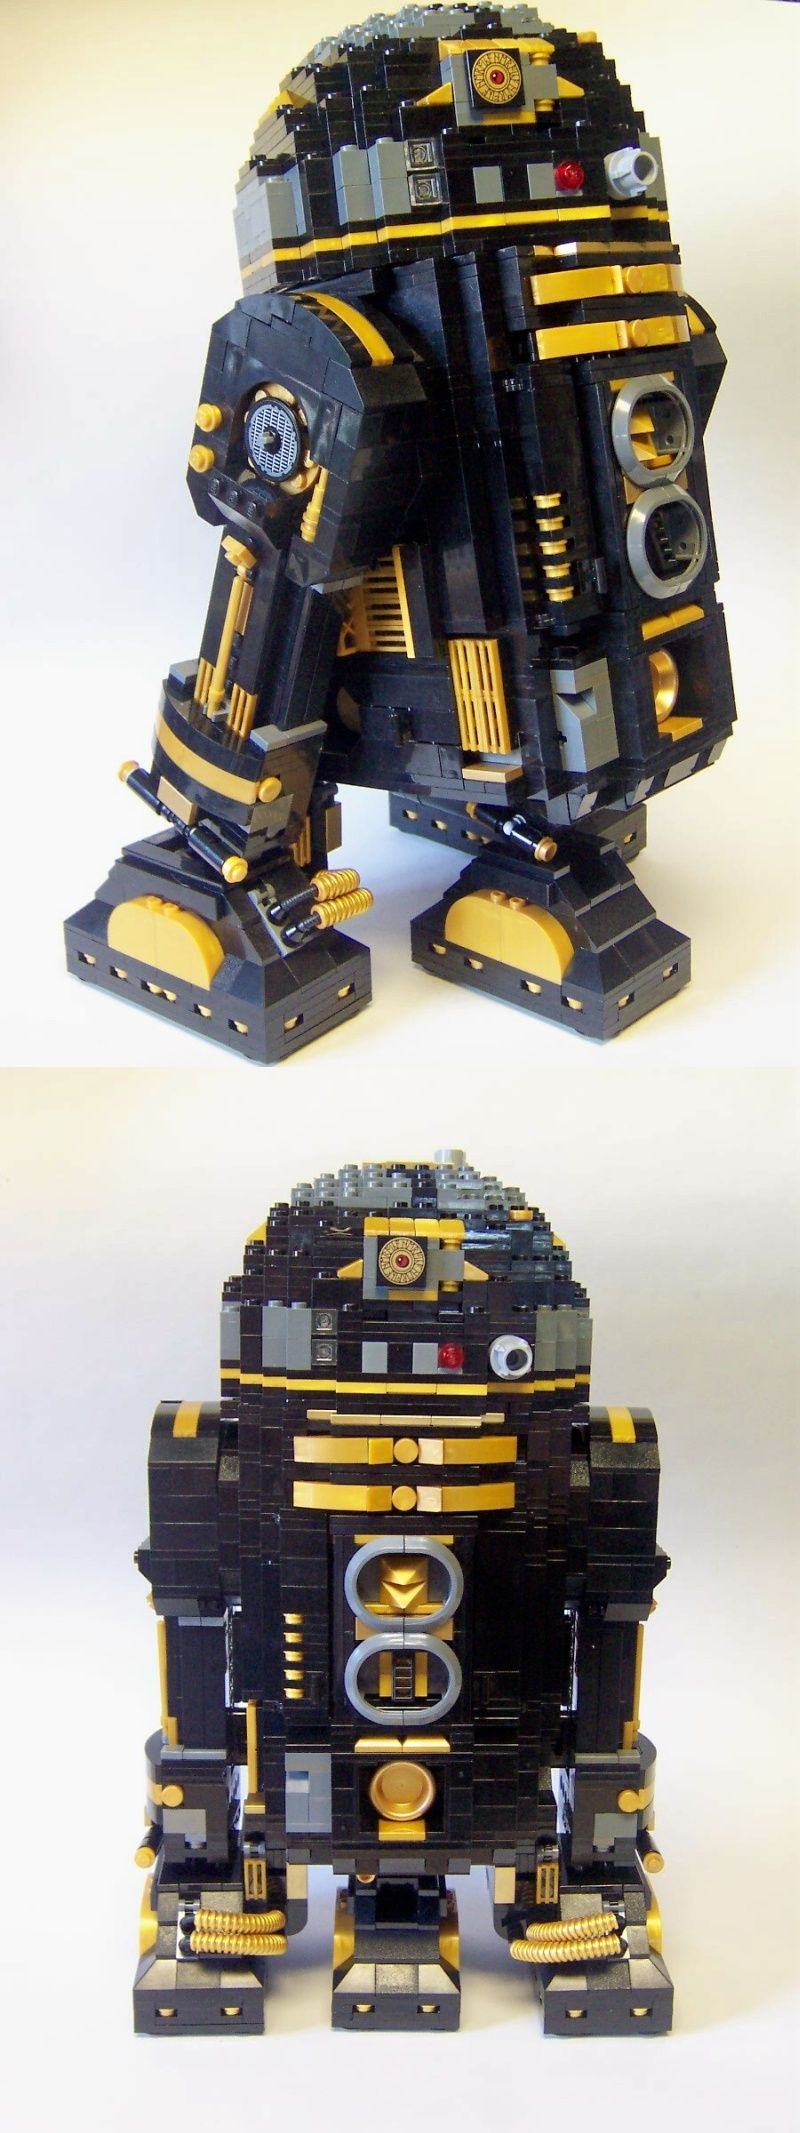 LEGO Star Wars R2-Pi, Death Star astrodroid. Inifinitly cool! I took the directions from kit 10225 and picked through my Lego collection to create this for Legoland Star Wars Days. #LEGO #StarWars